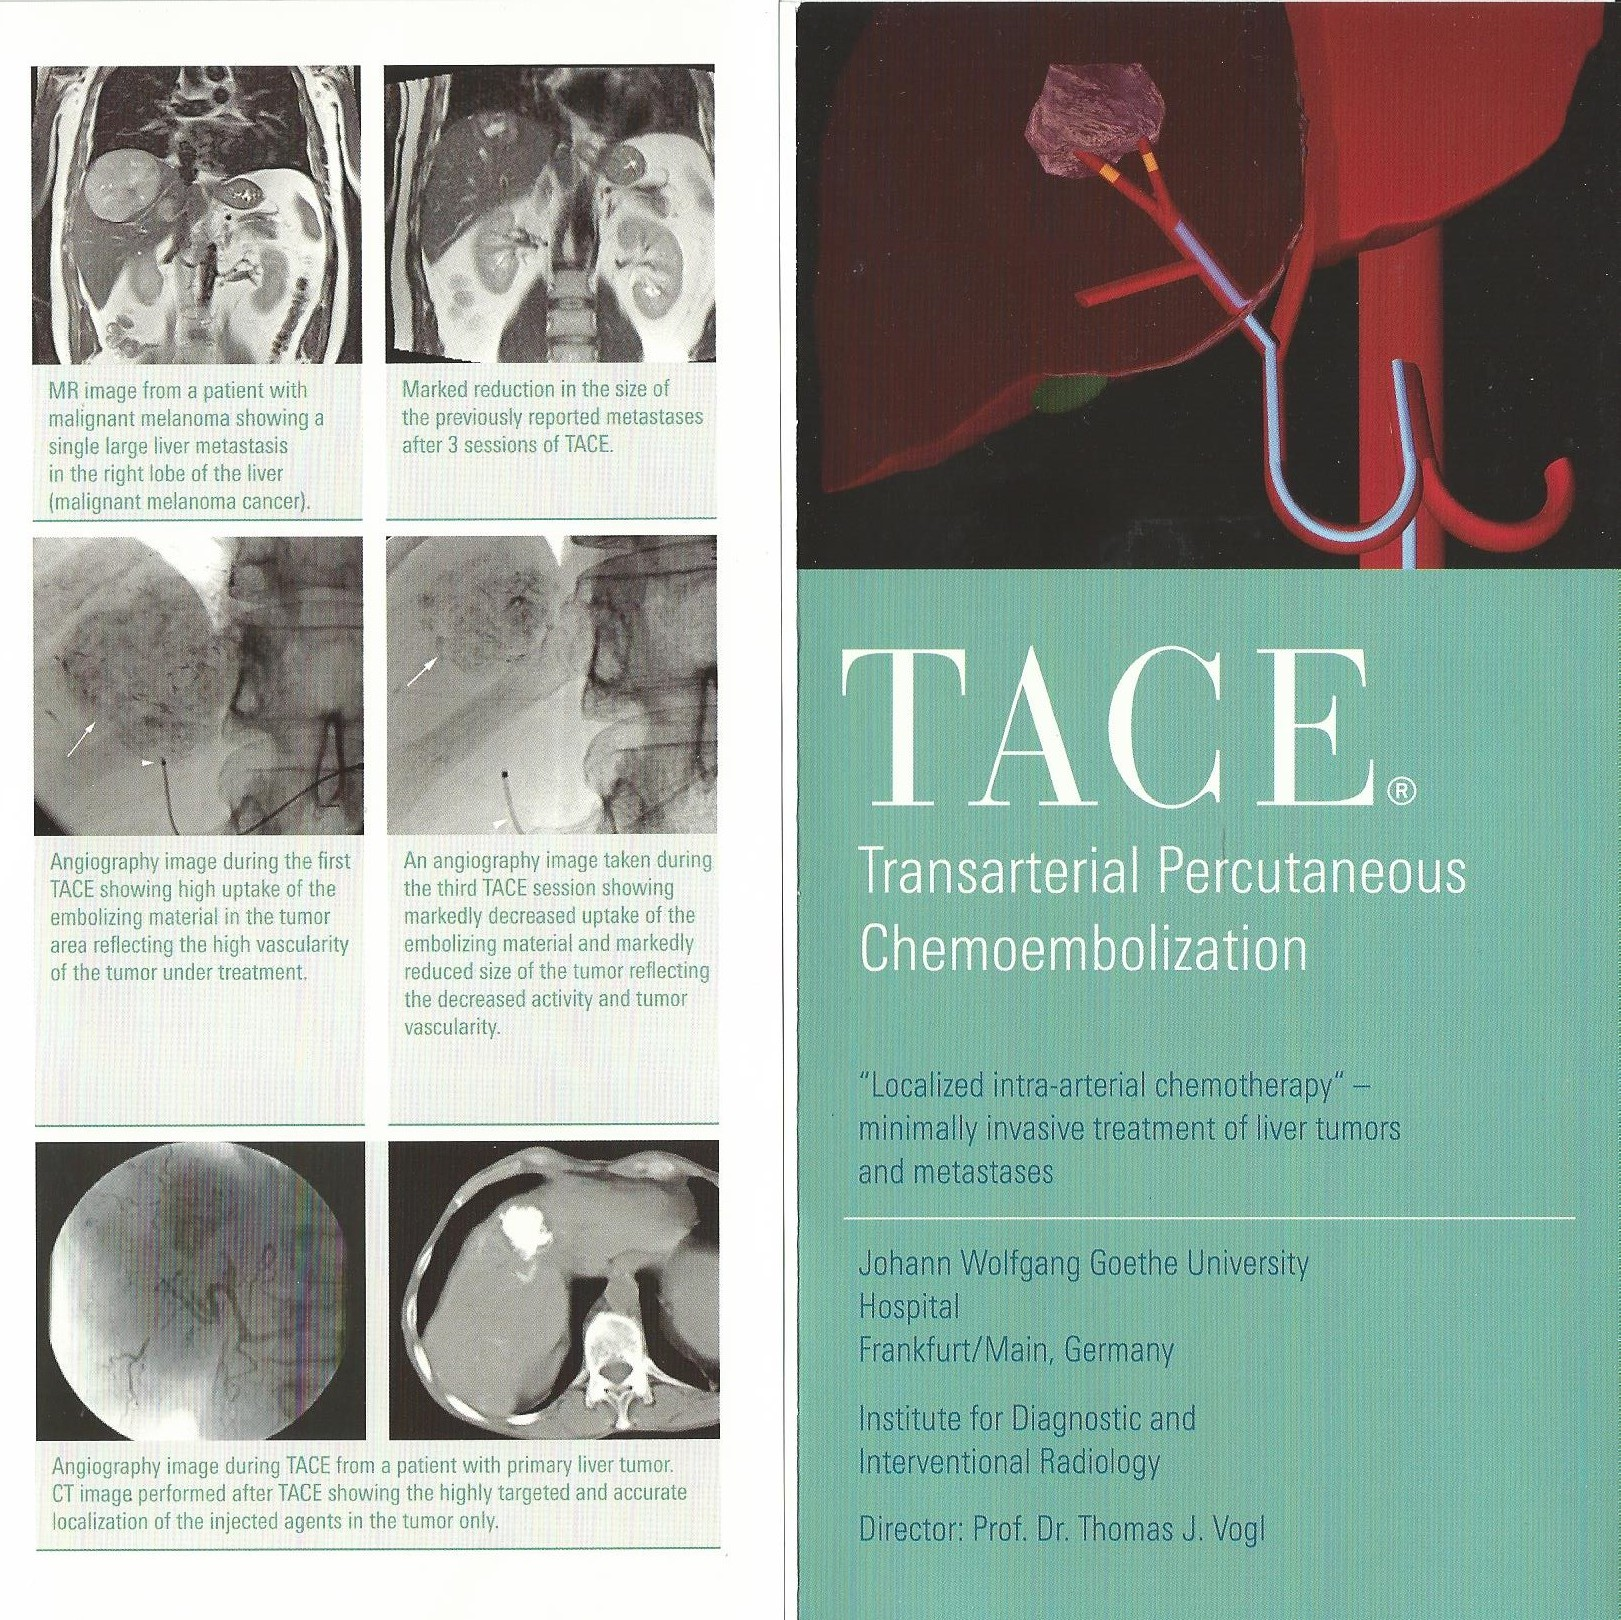 MOre about TACE